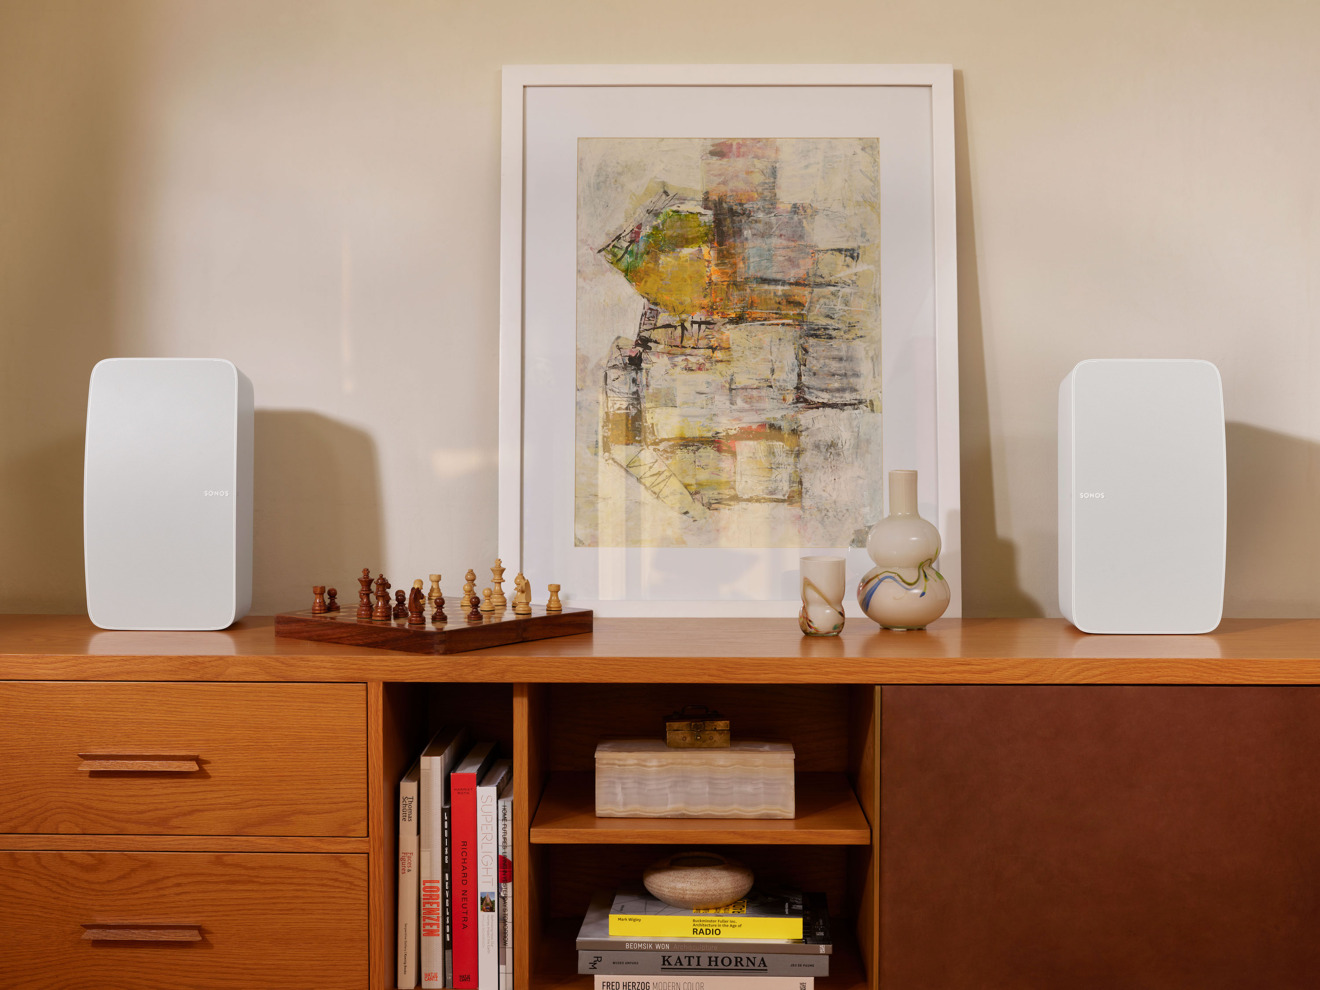 The new Sonos Five in all white